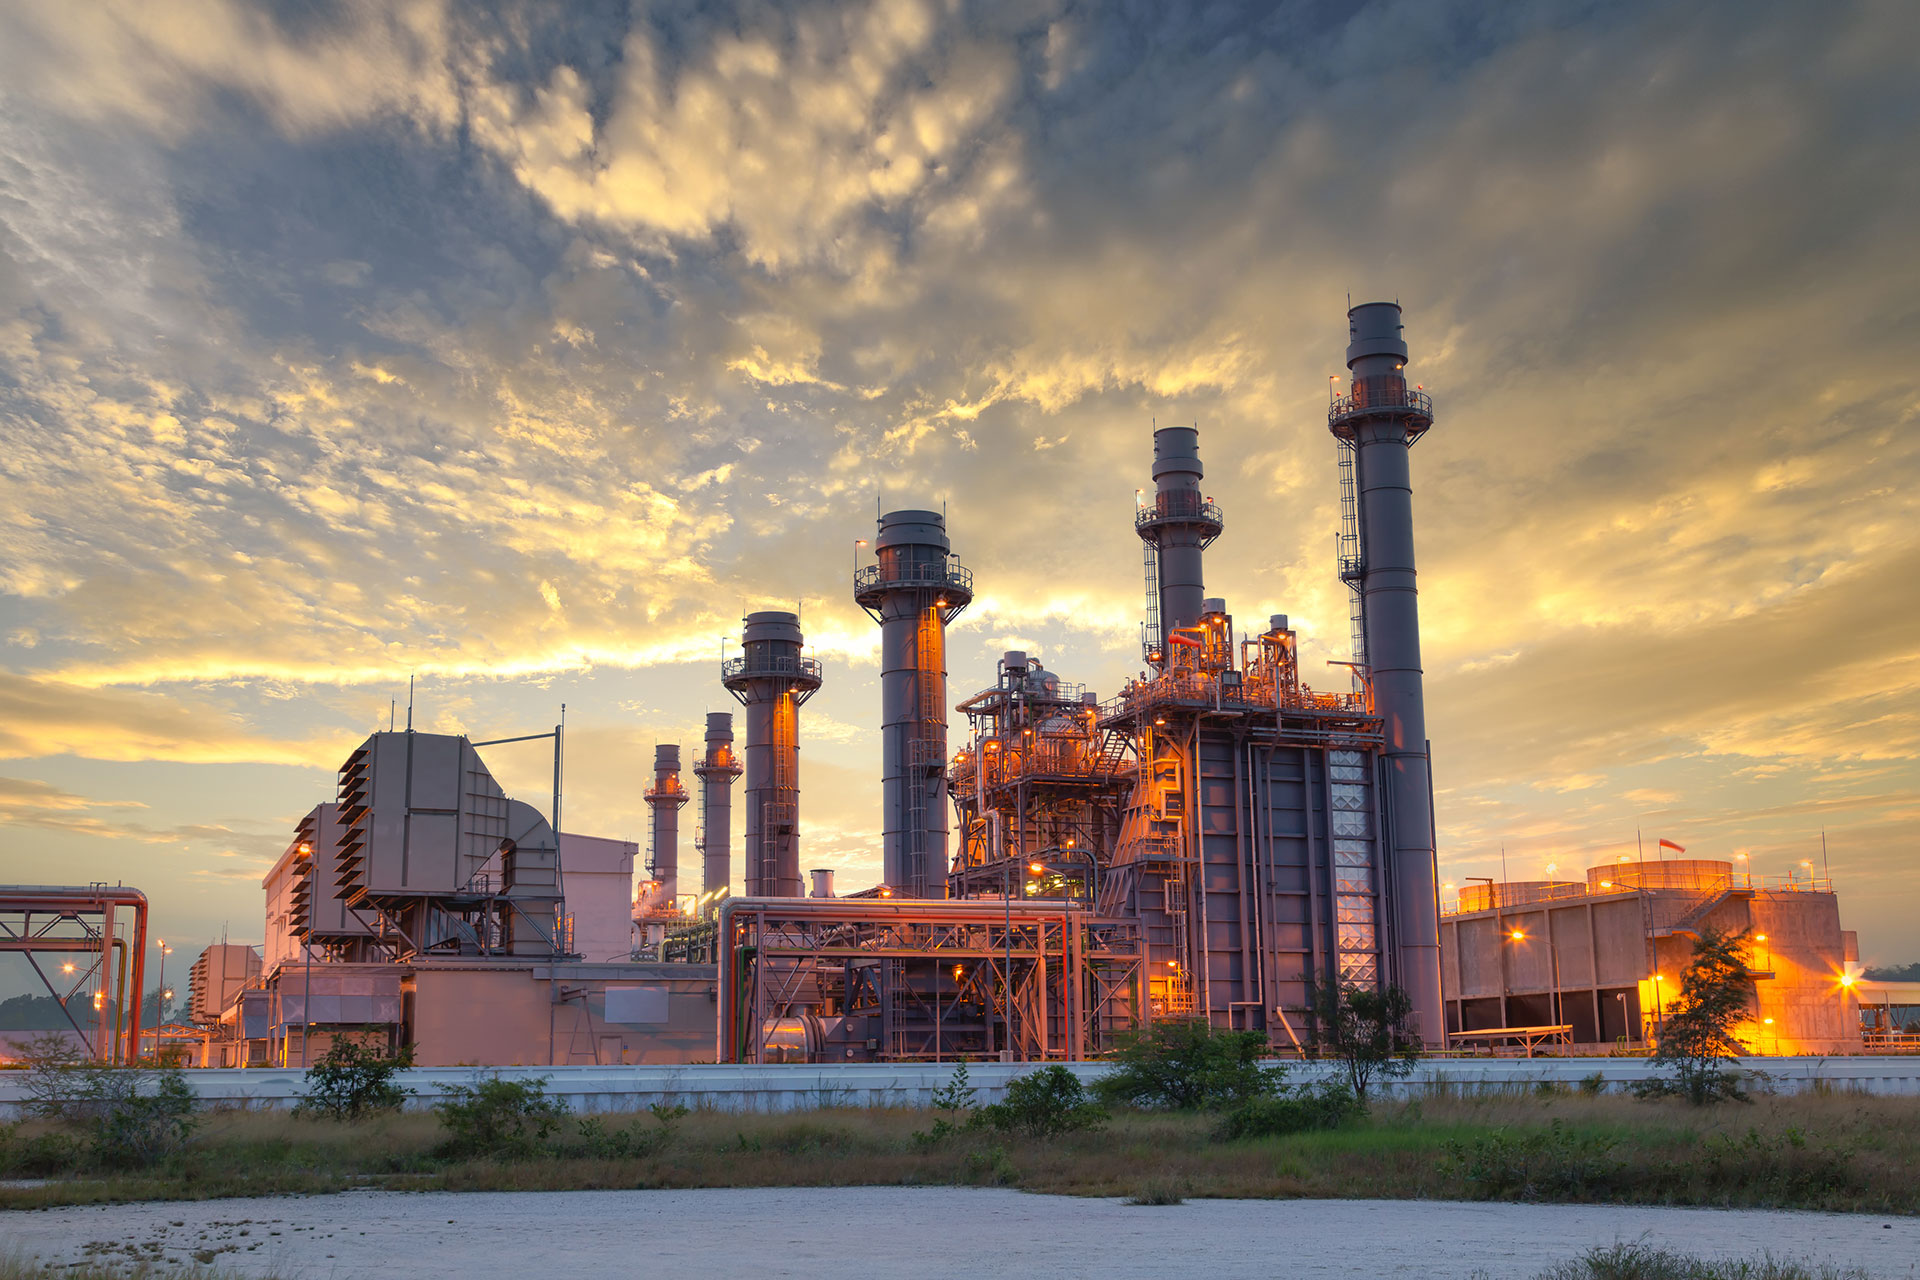 Stock Photo: Power plant Energy power station area, Gas turbine electrical power plant during sunset and twilight time